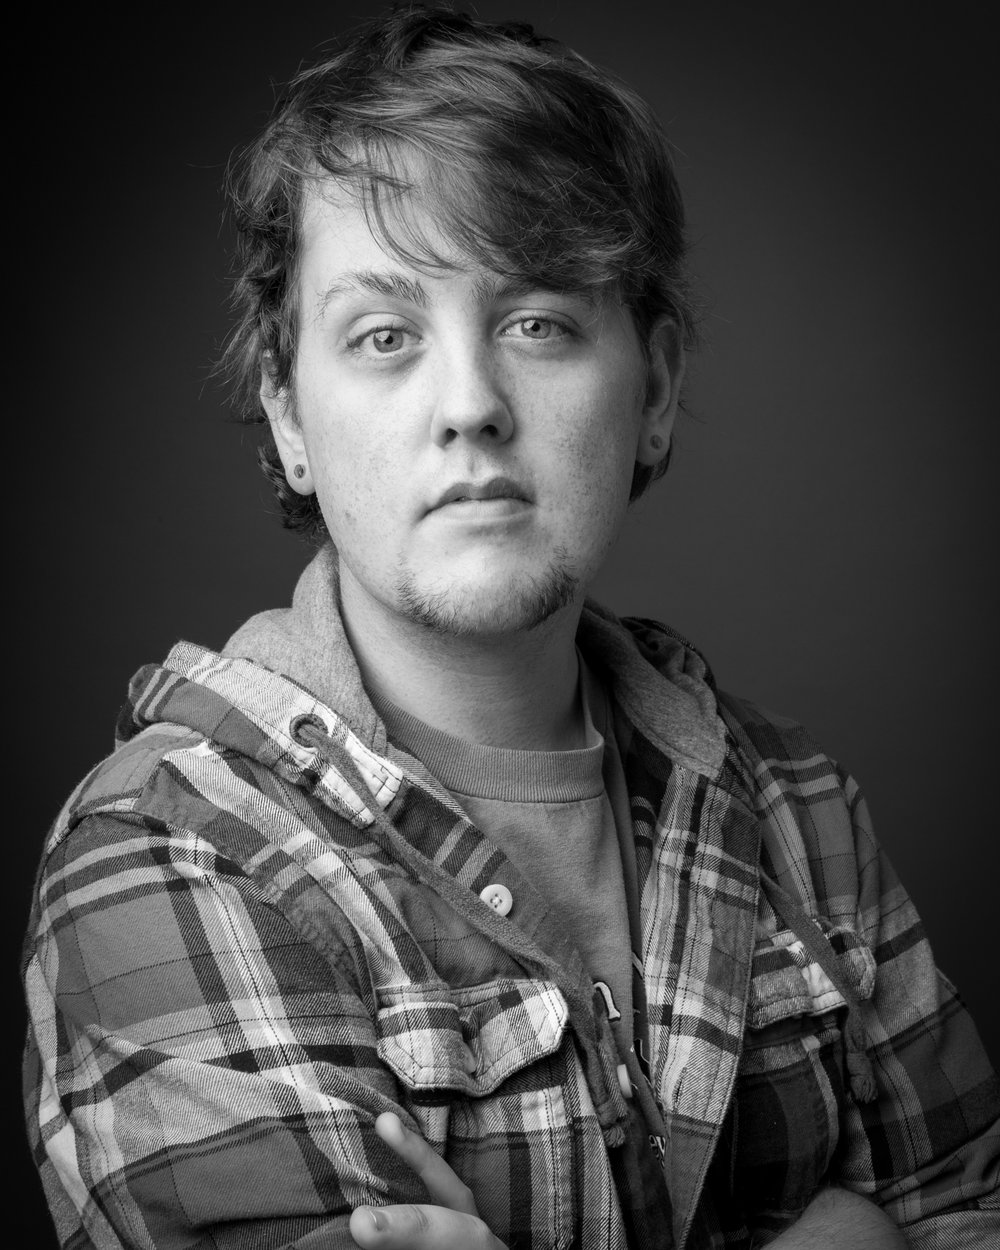 RPena_Portraiture_010.jpg